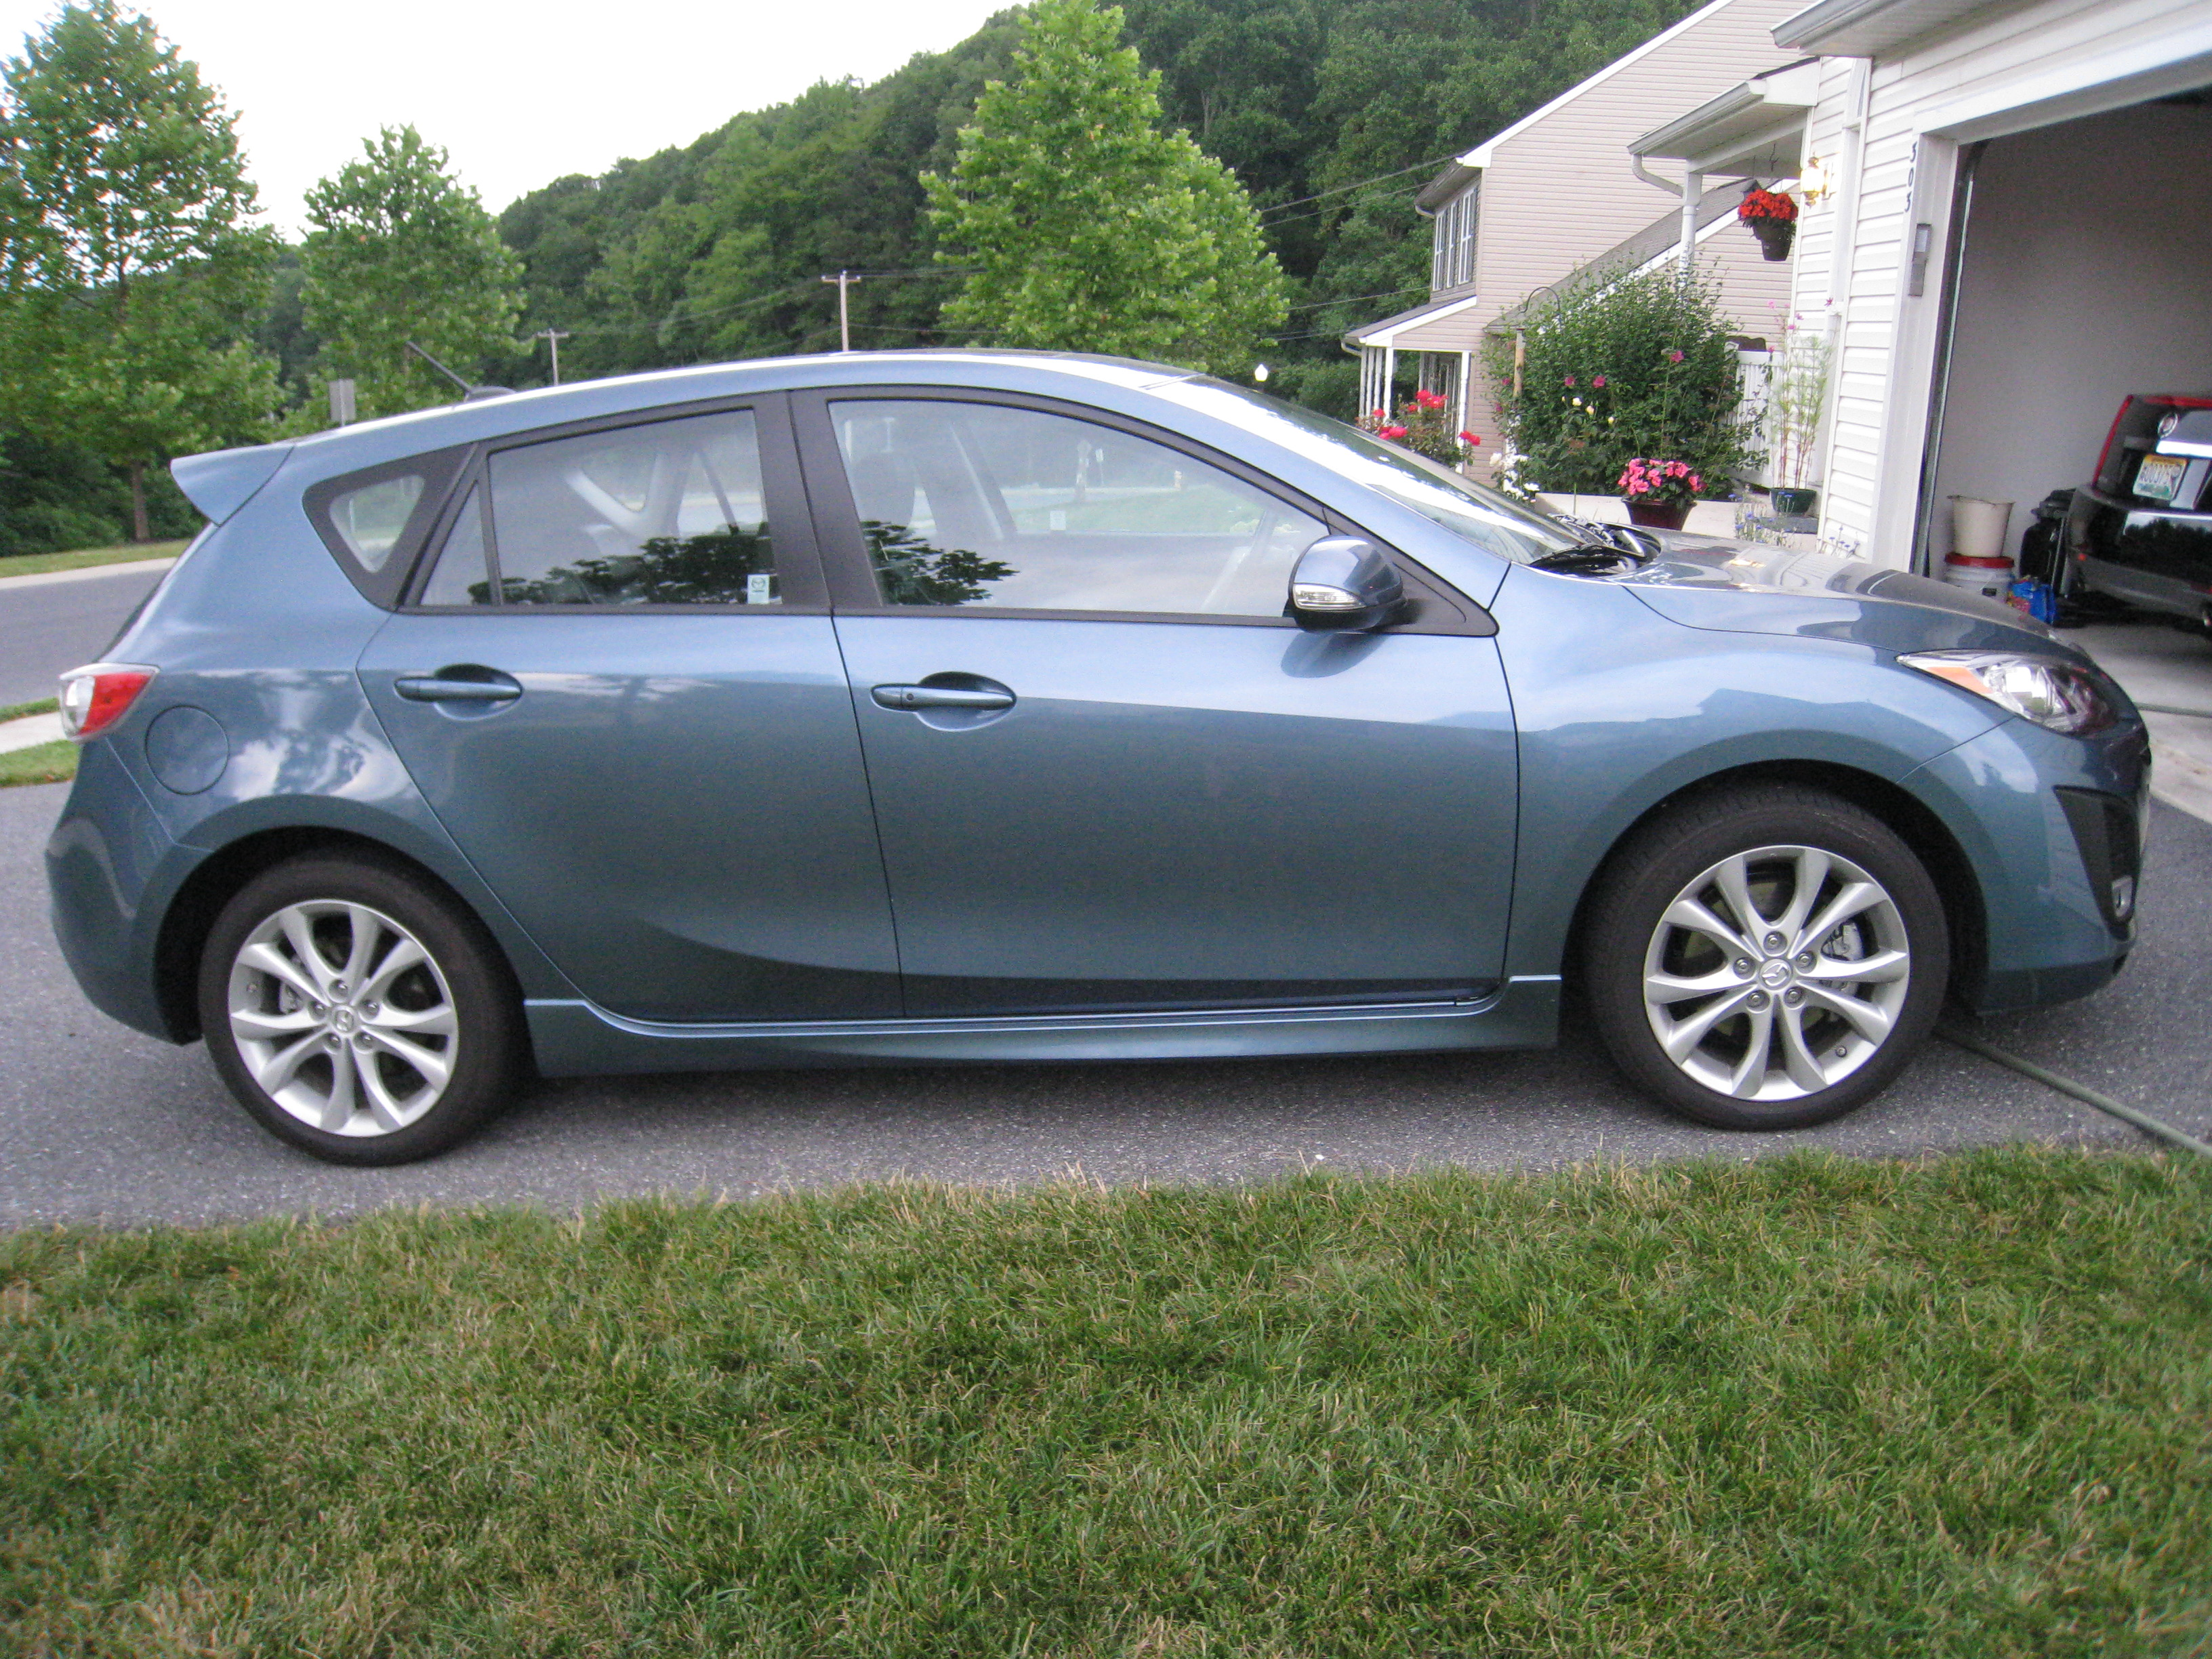 2010 mazda mazda3s grand touring 5 door review. Black Bedroom Furniture Sets. Home Design Ideas